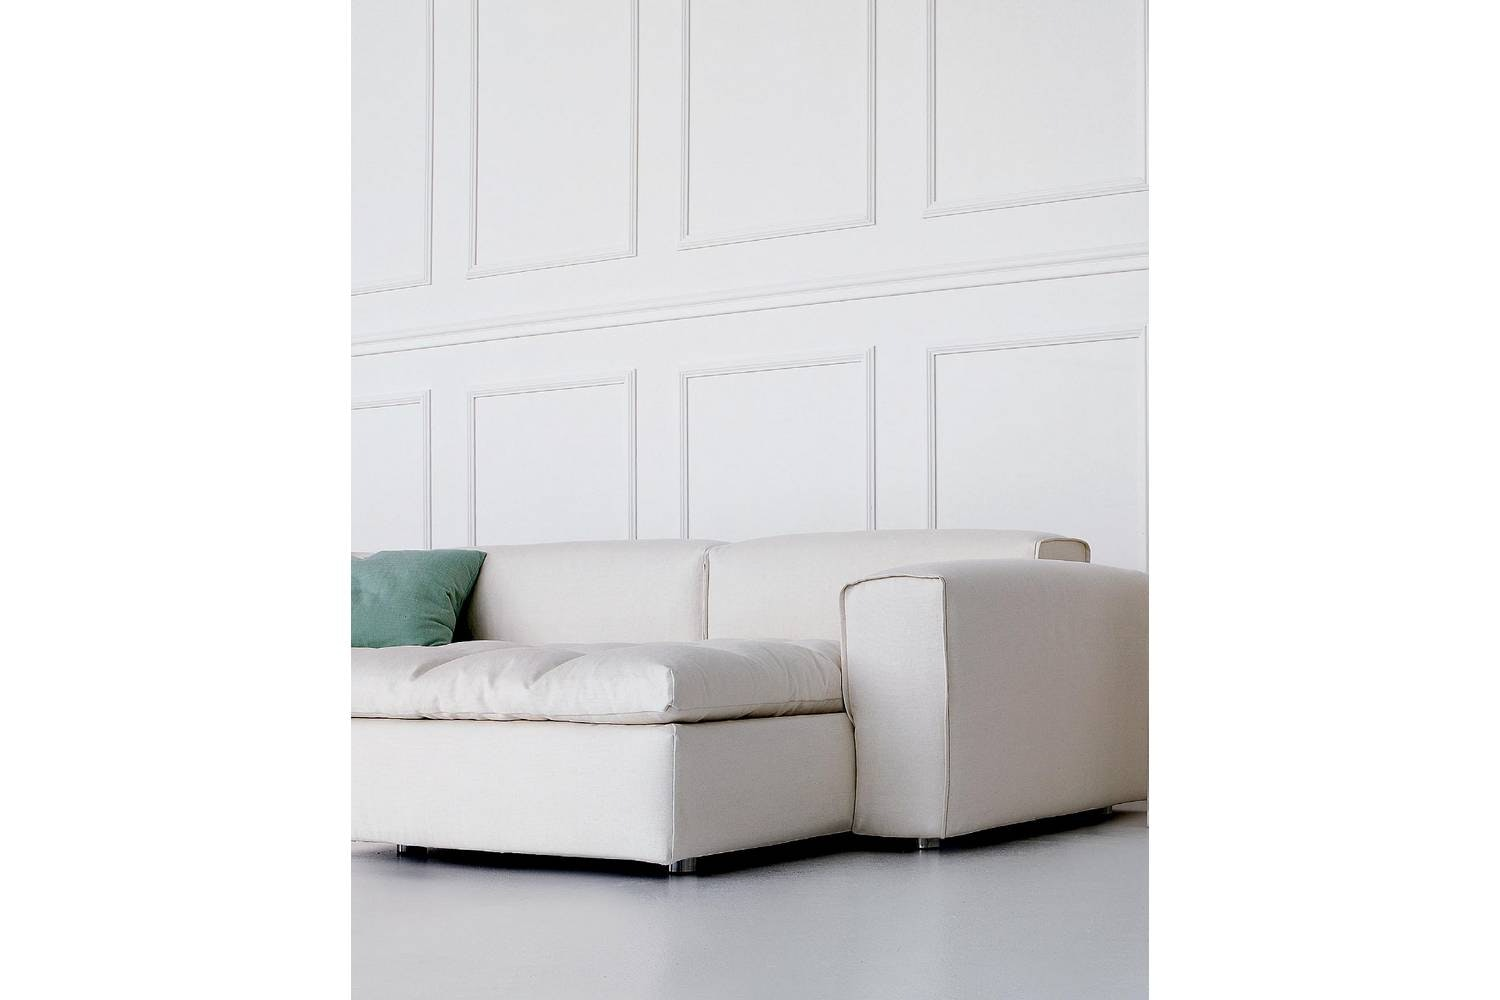 Nap Sofa by Paola Vella for Arflex